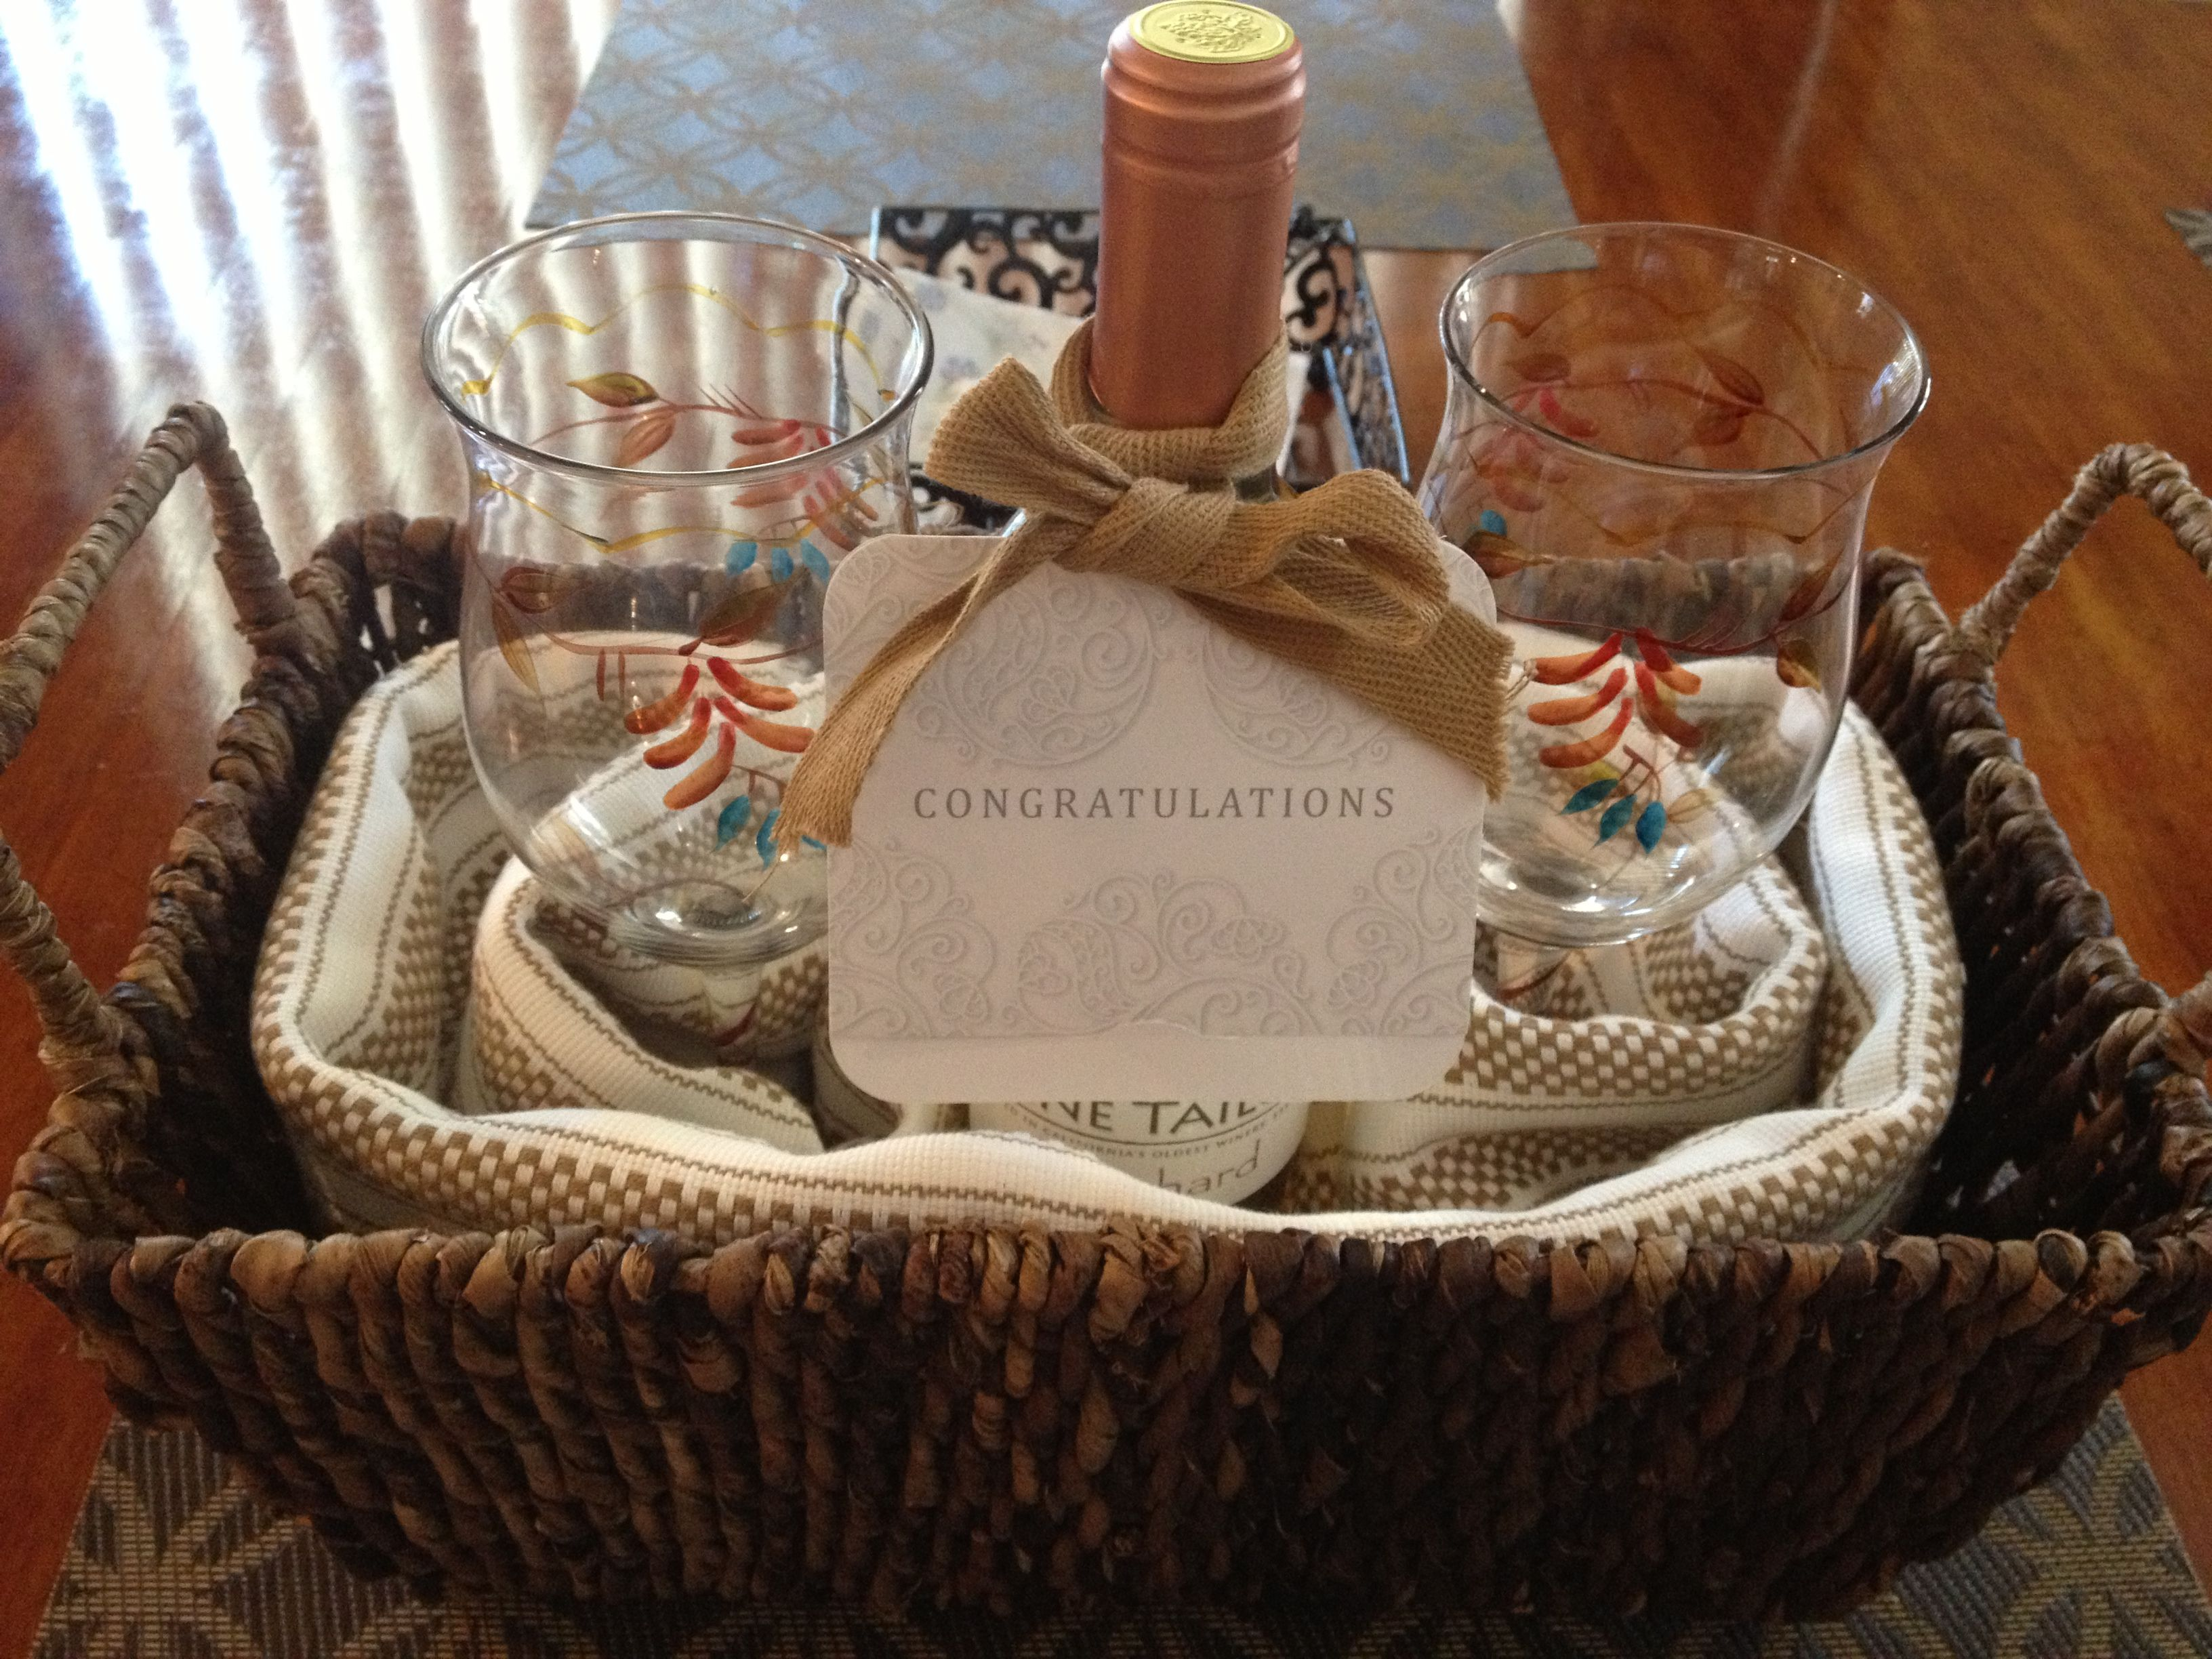 Diy house warming gift wicker basket kitchen towels 2 for Best wine for housewarming gift